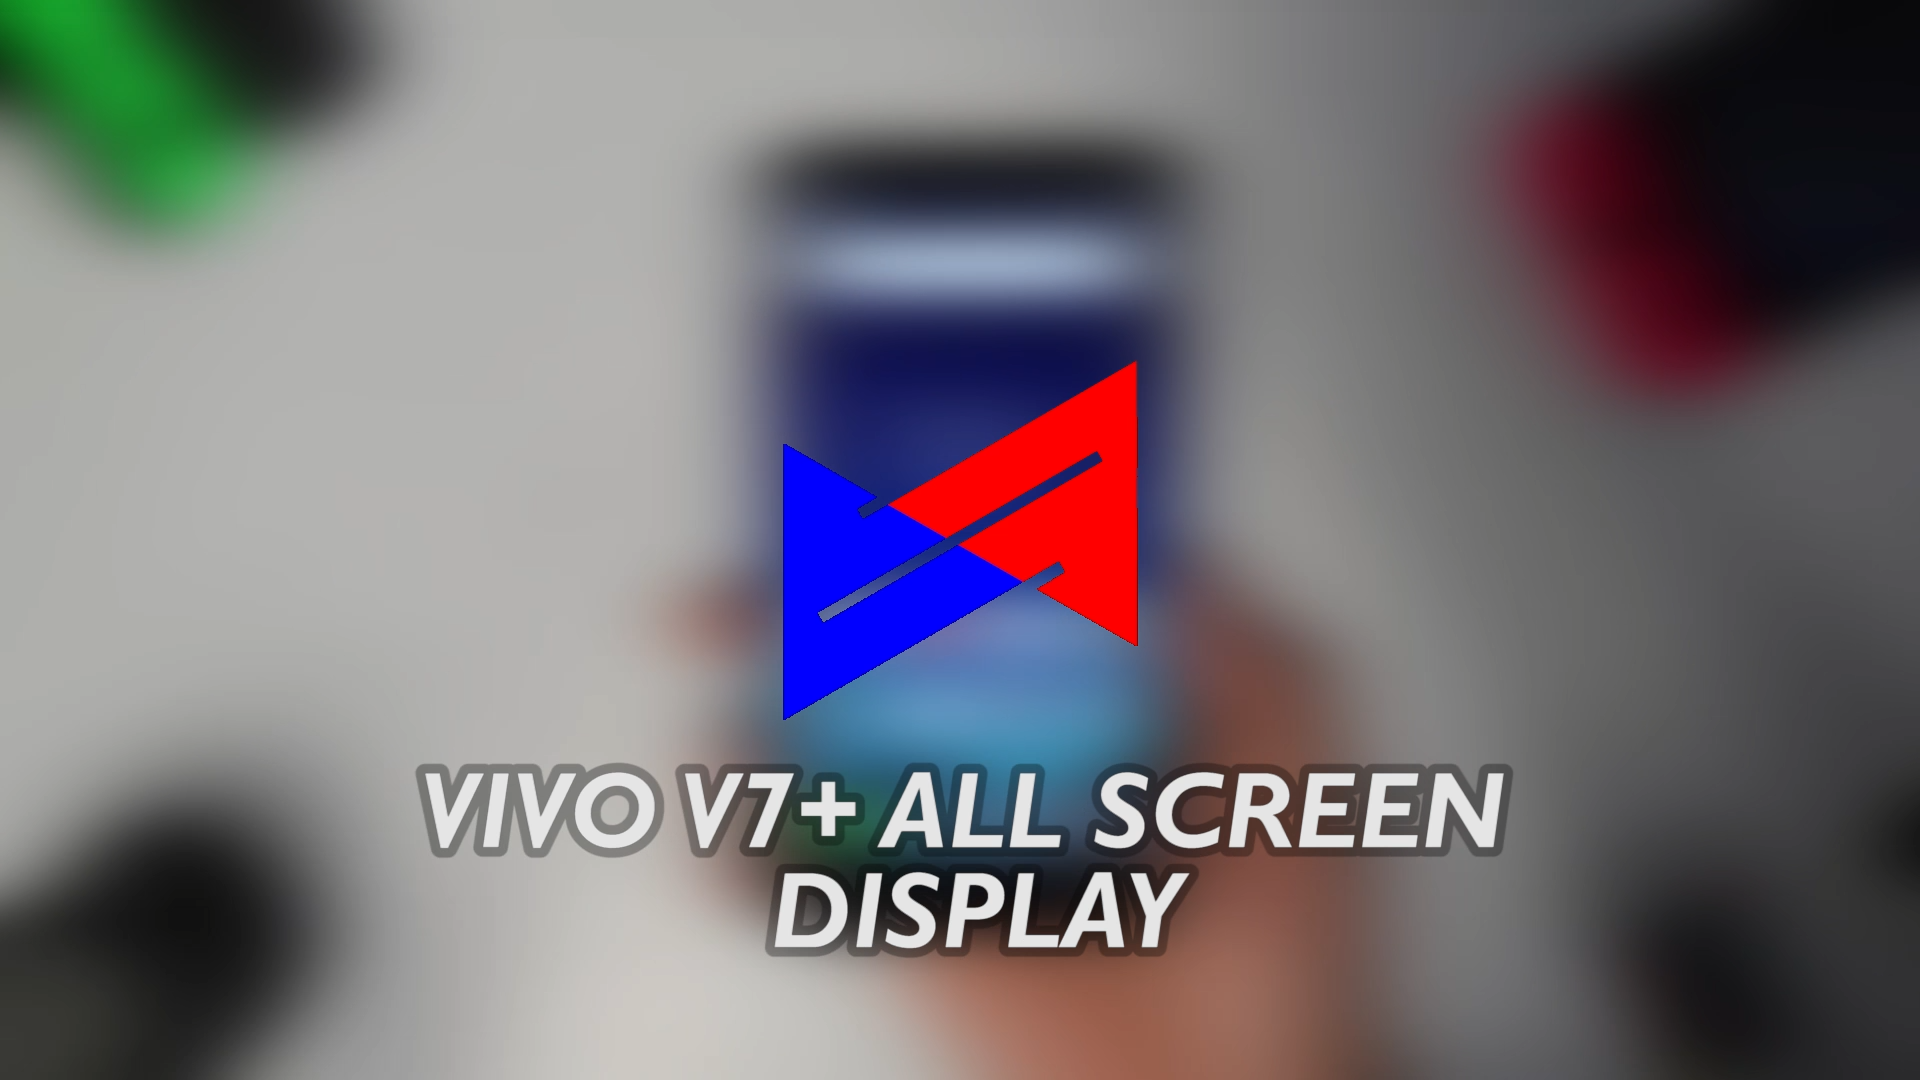 VIVO V7+ All Screen Display lives up to its hype!